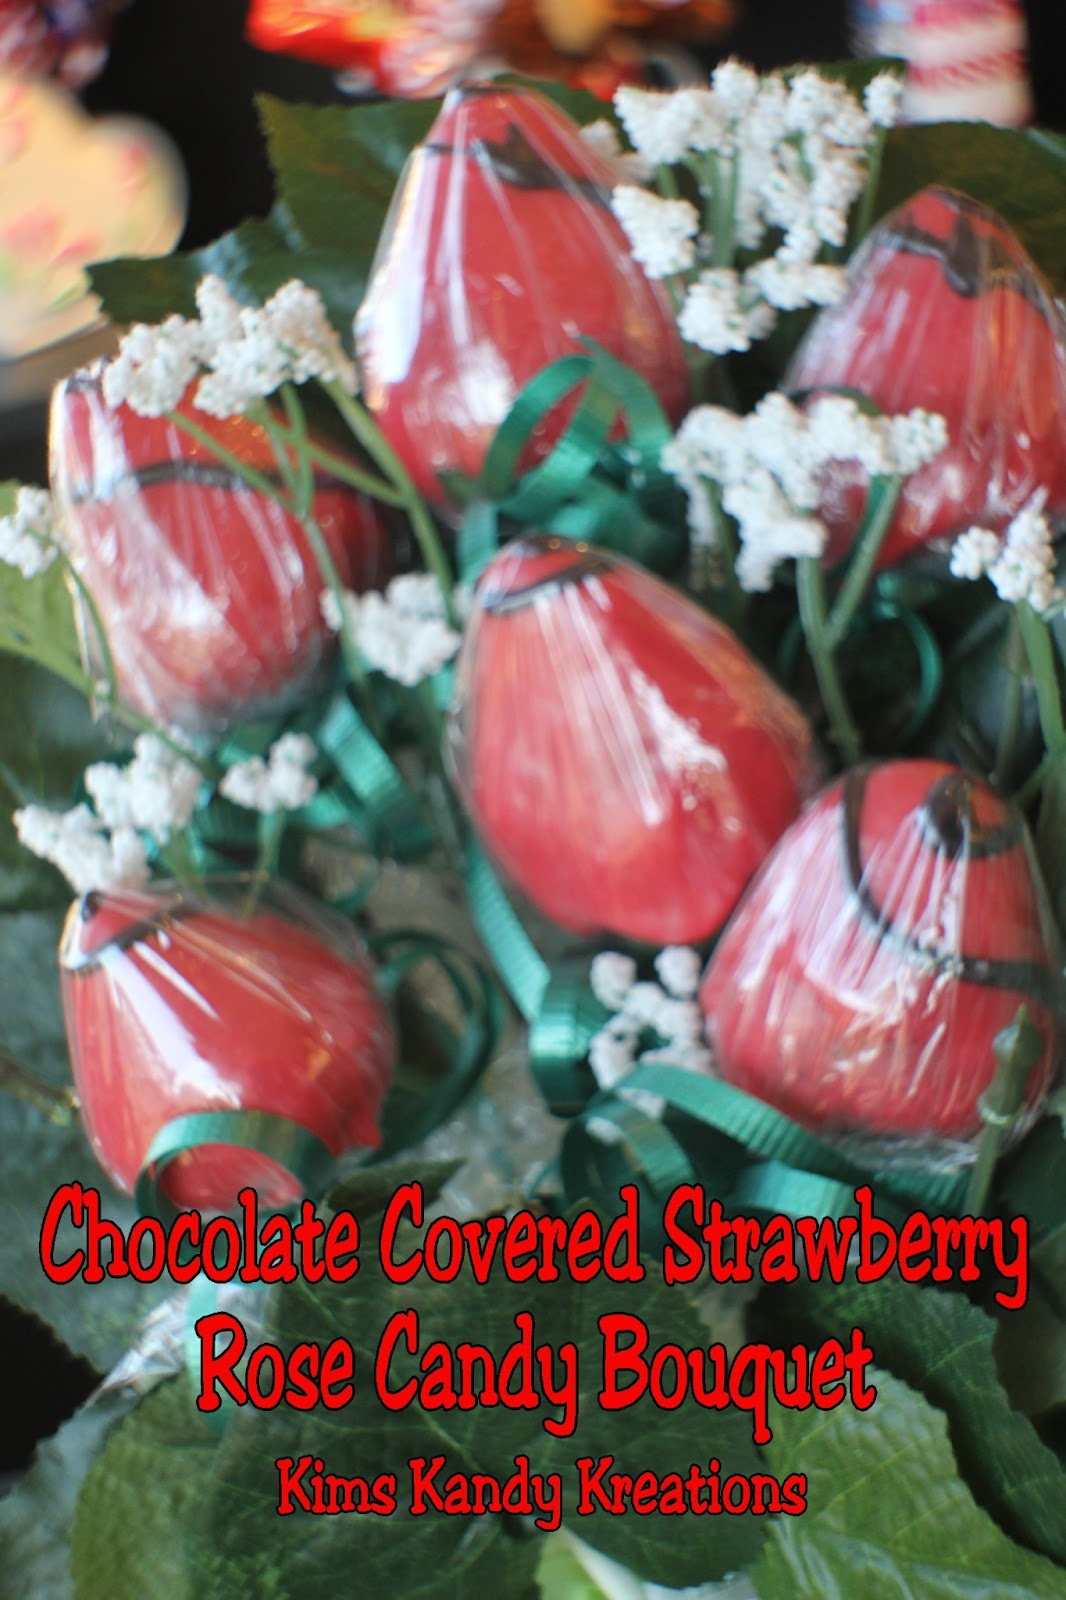 Chocolate Covered Strawberry Rose Candy Bouquet | Kandy Kreations